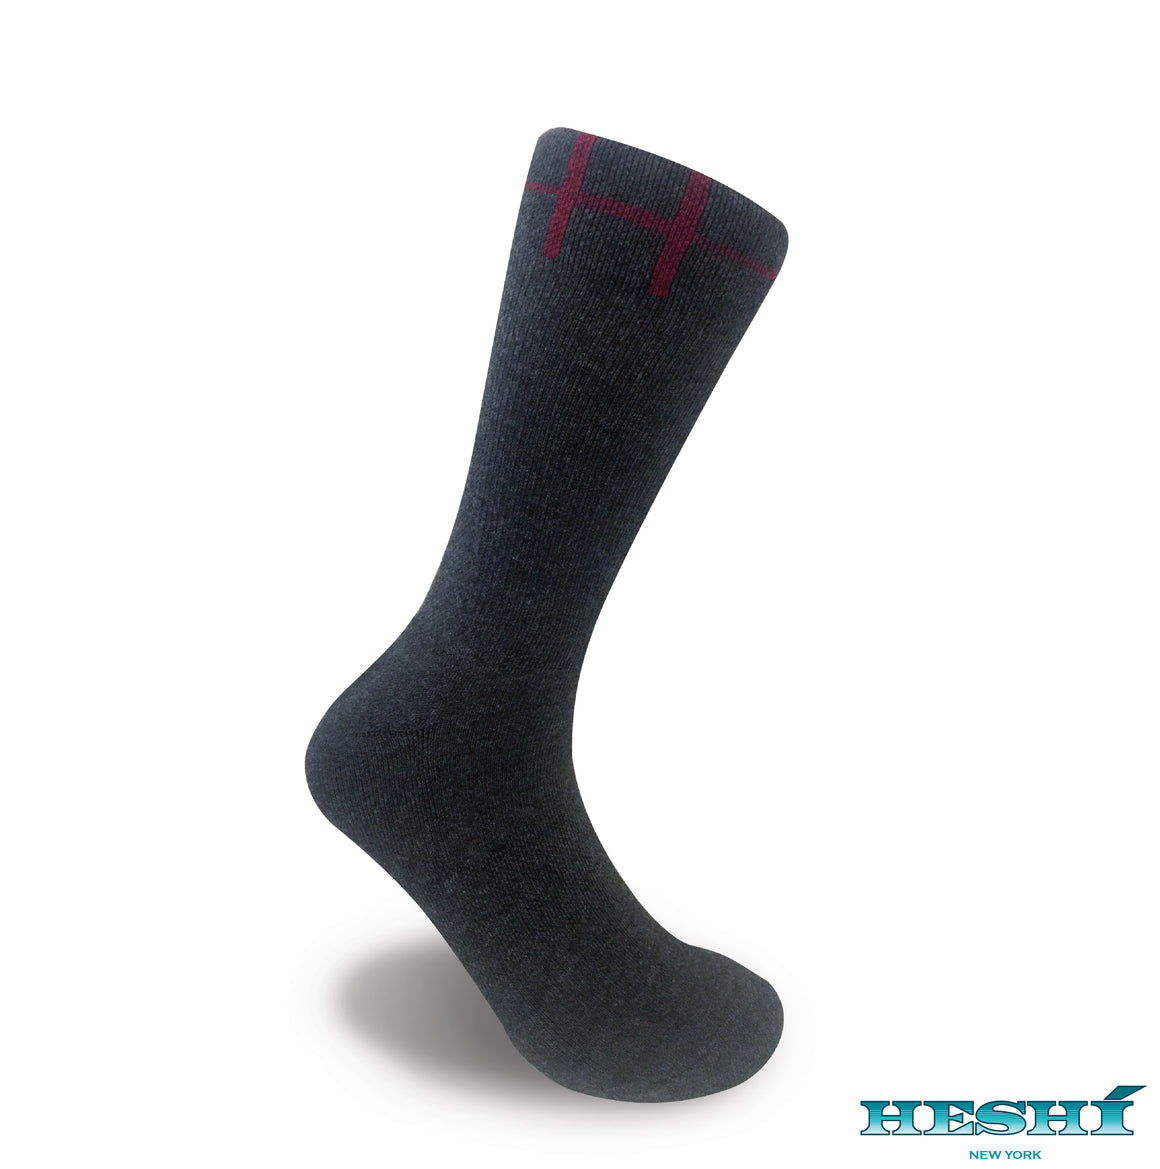 Heshí Basic Crew Sock - Charcoal